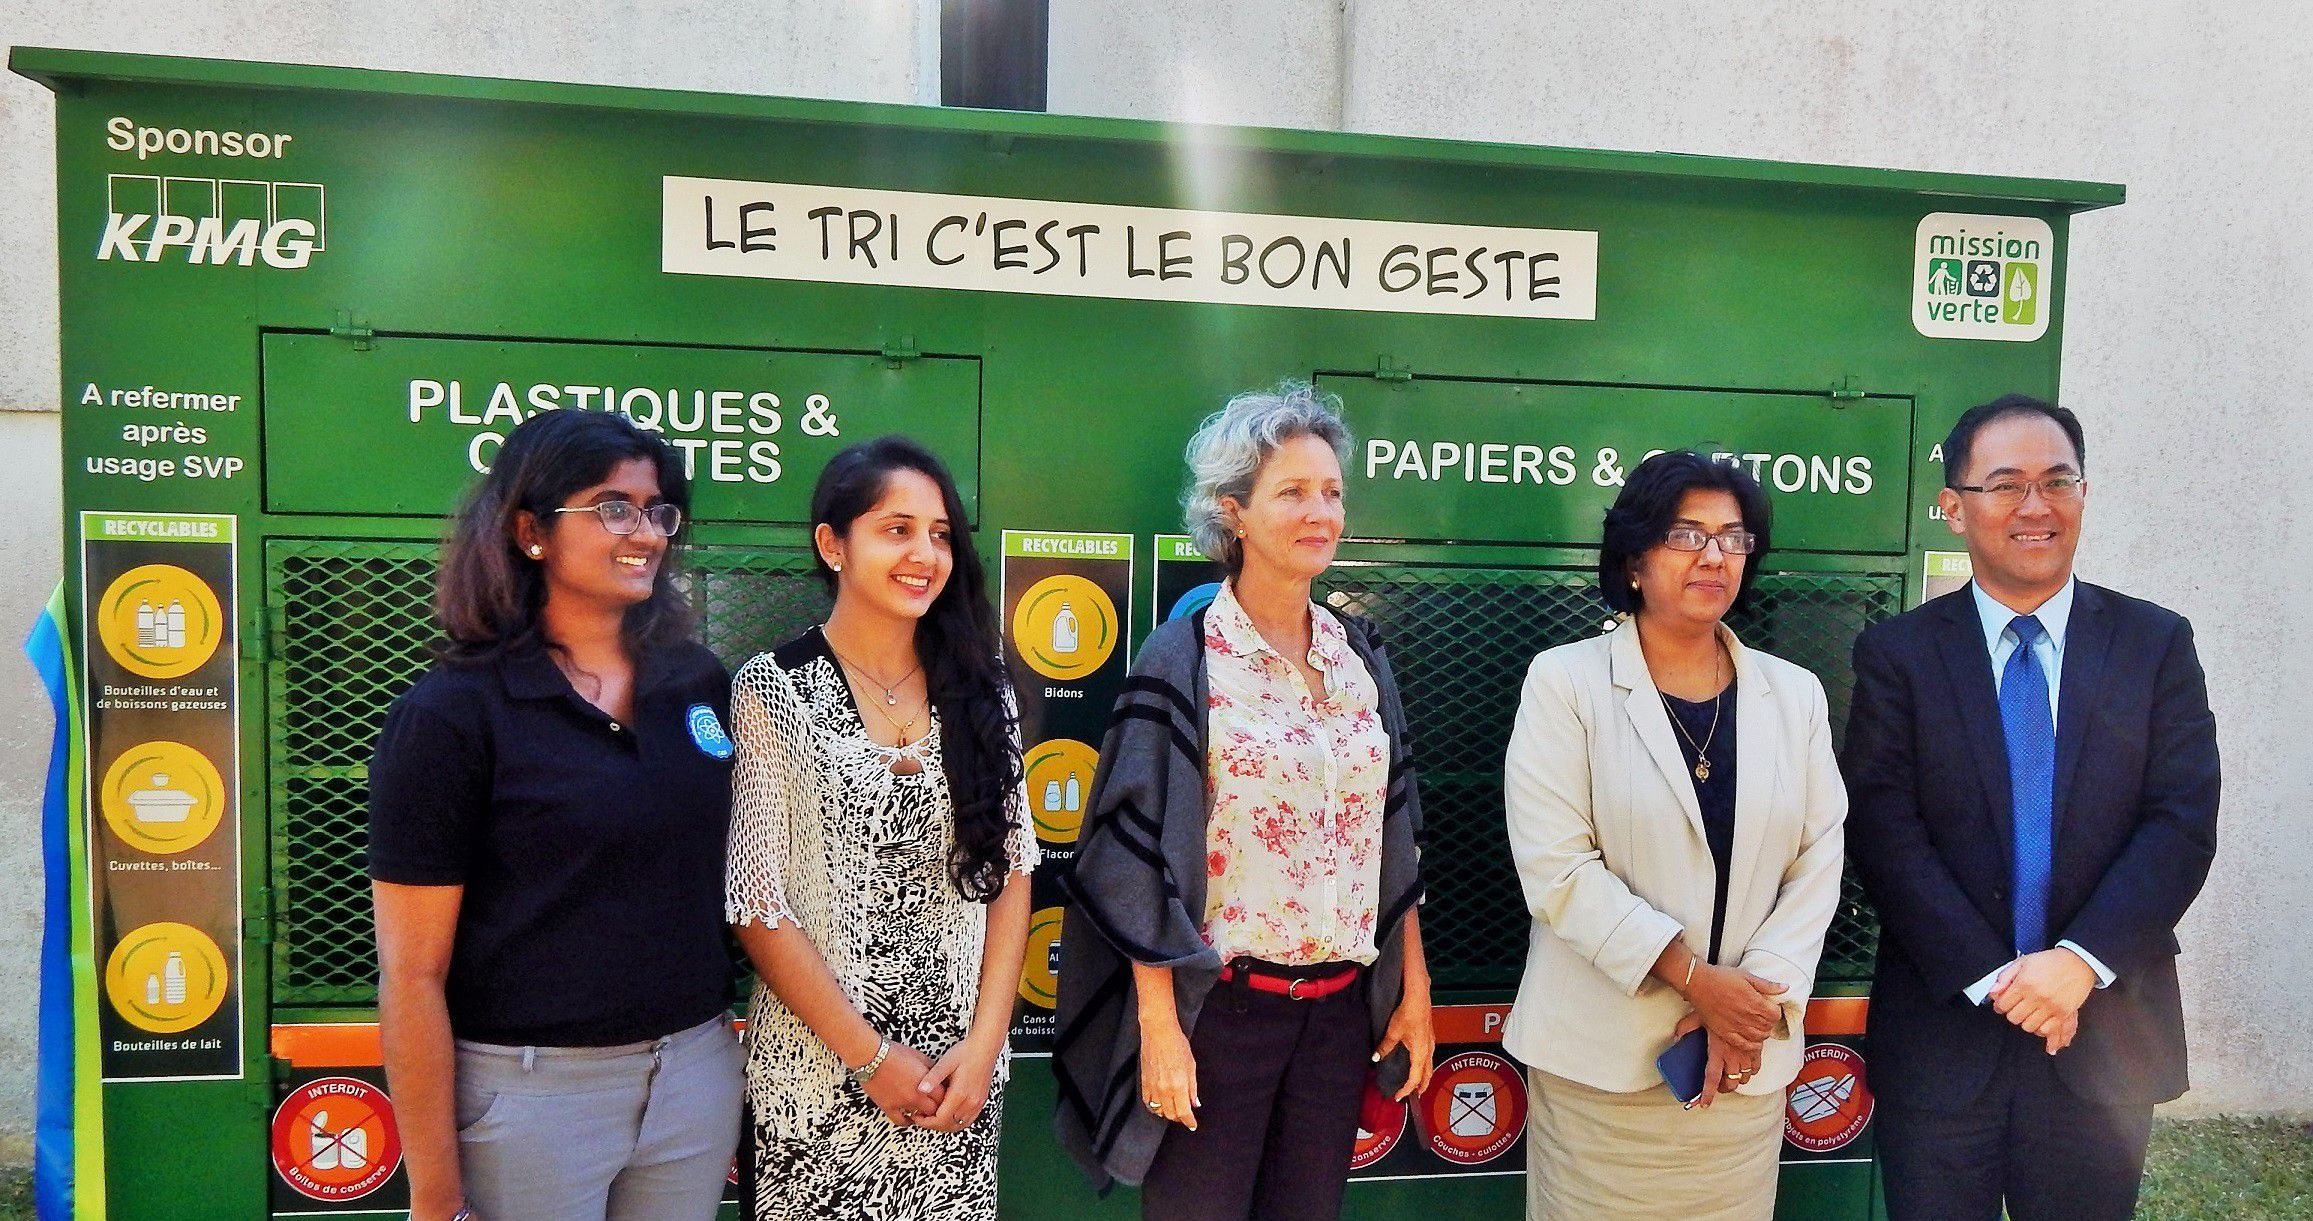 Inauguration of a waste sorting bin on the campus of the University of Mauritius